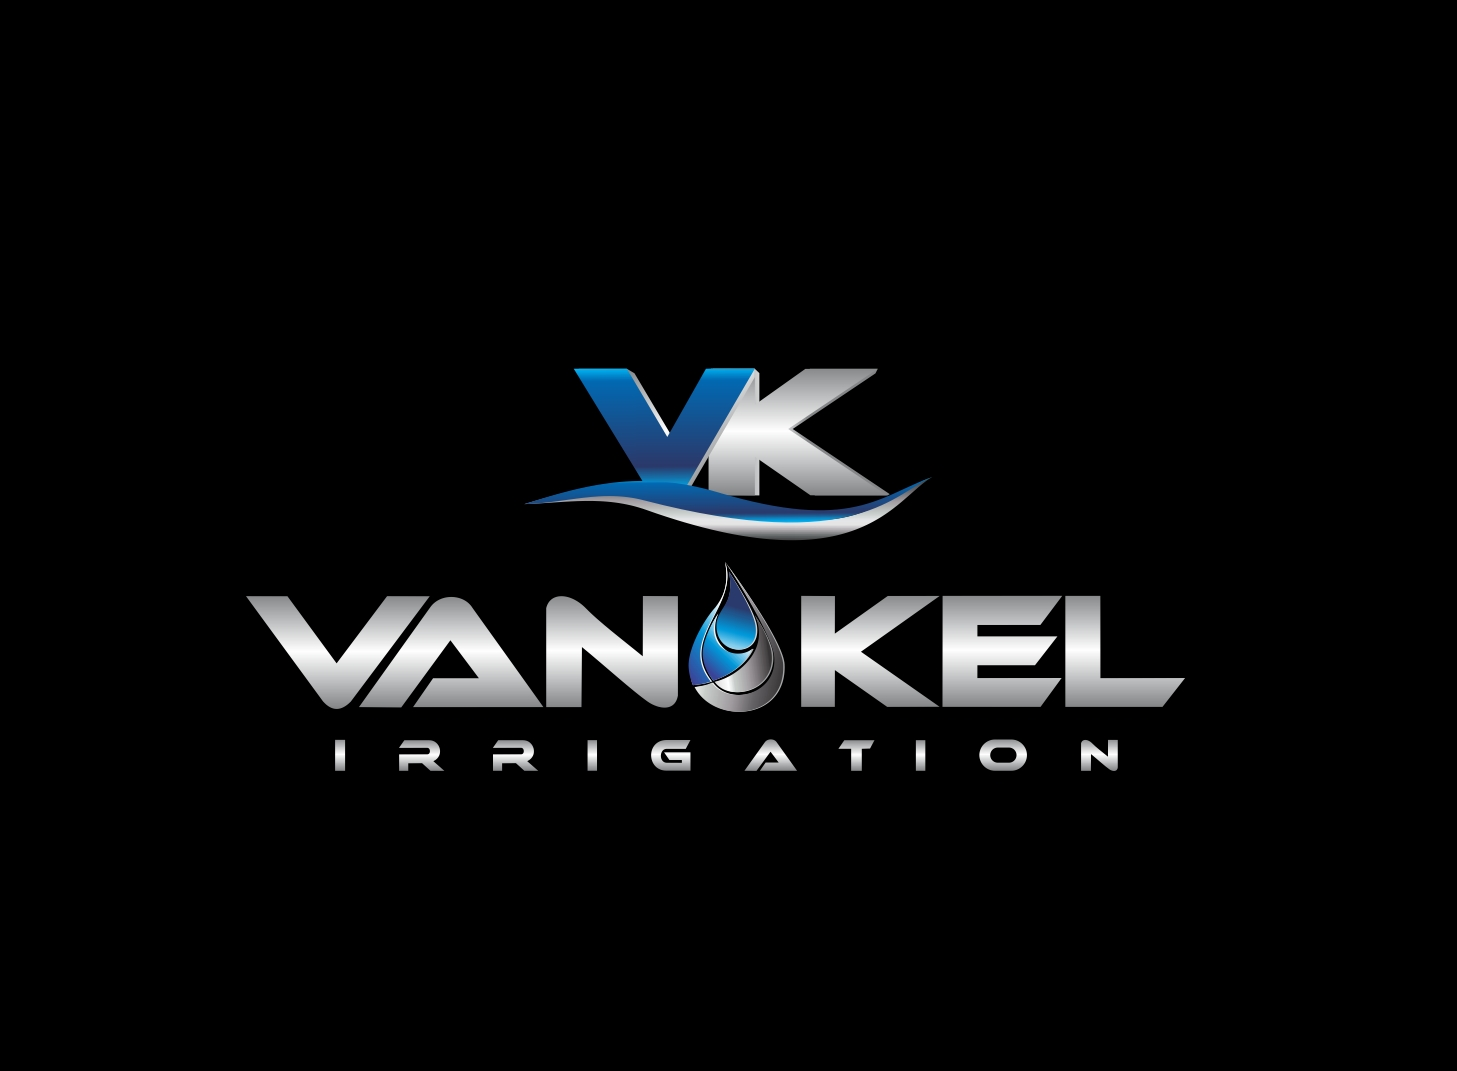 Logo Design by Zdravko Krulj - Entry No. 347 in the Logo Design Contest Van-Kel Irrigation Logo Design.